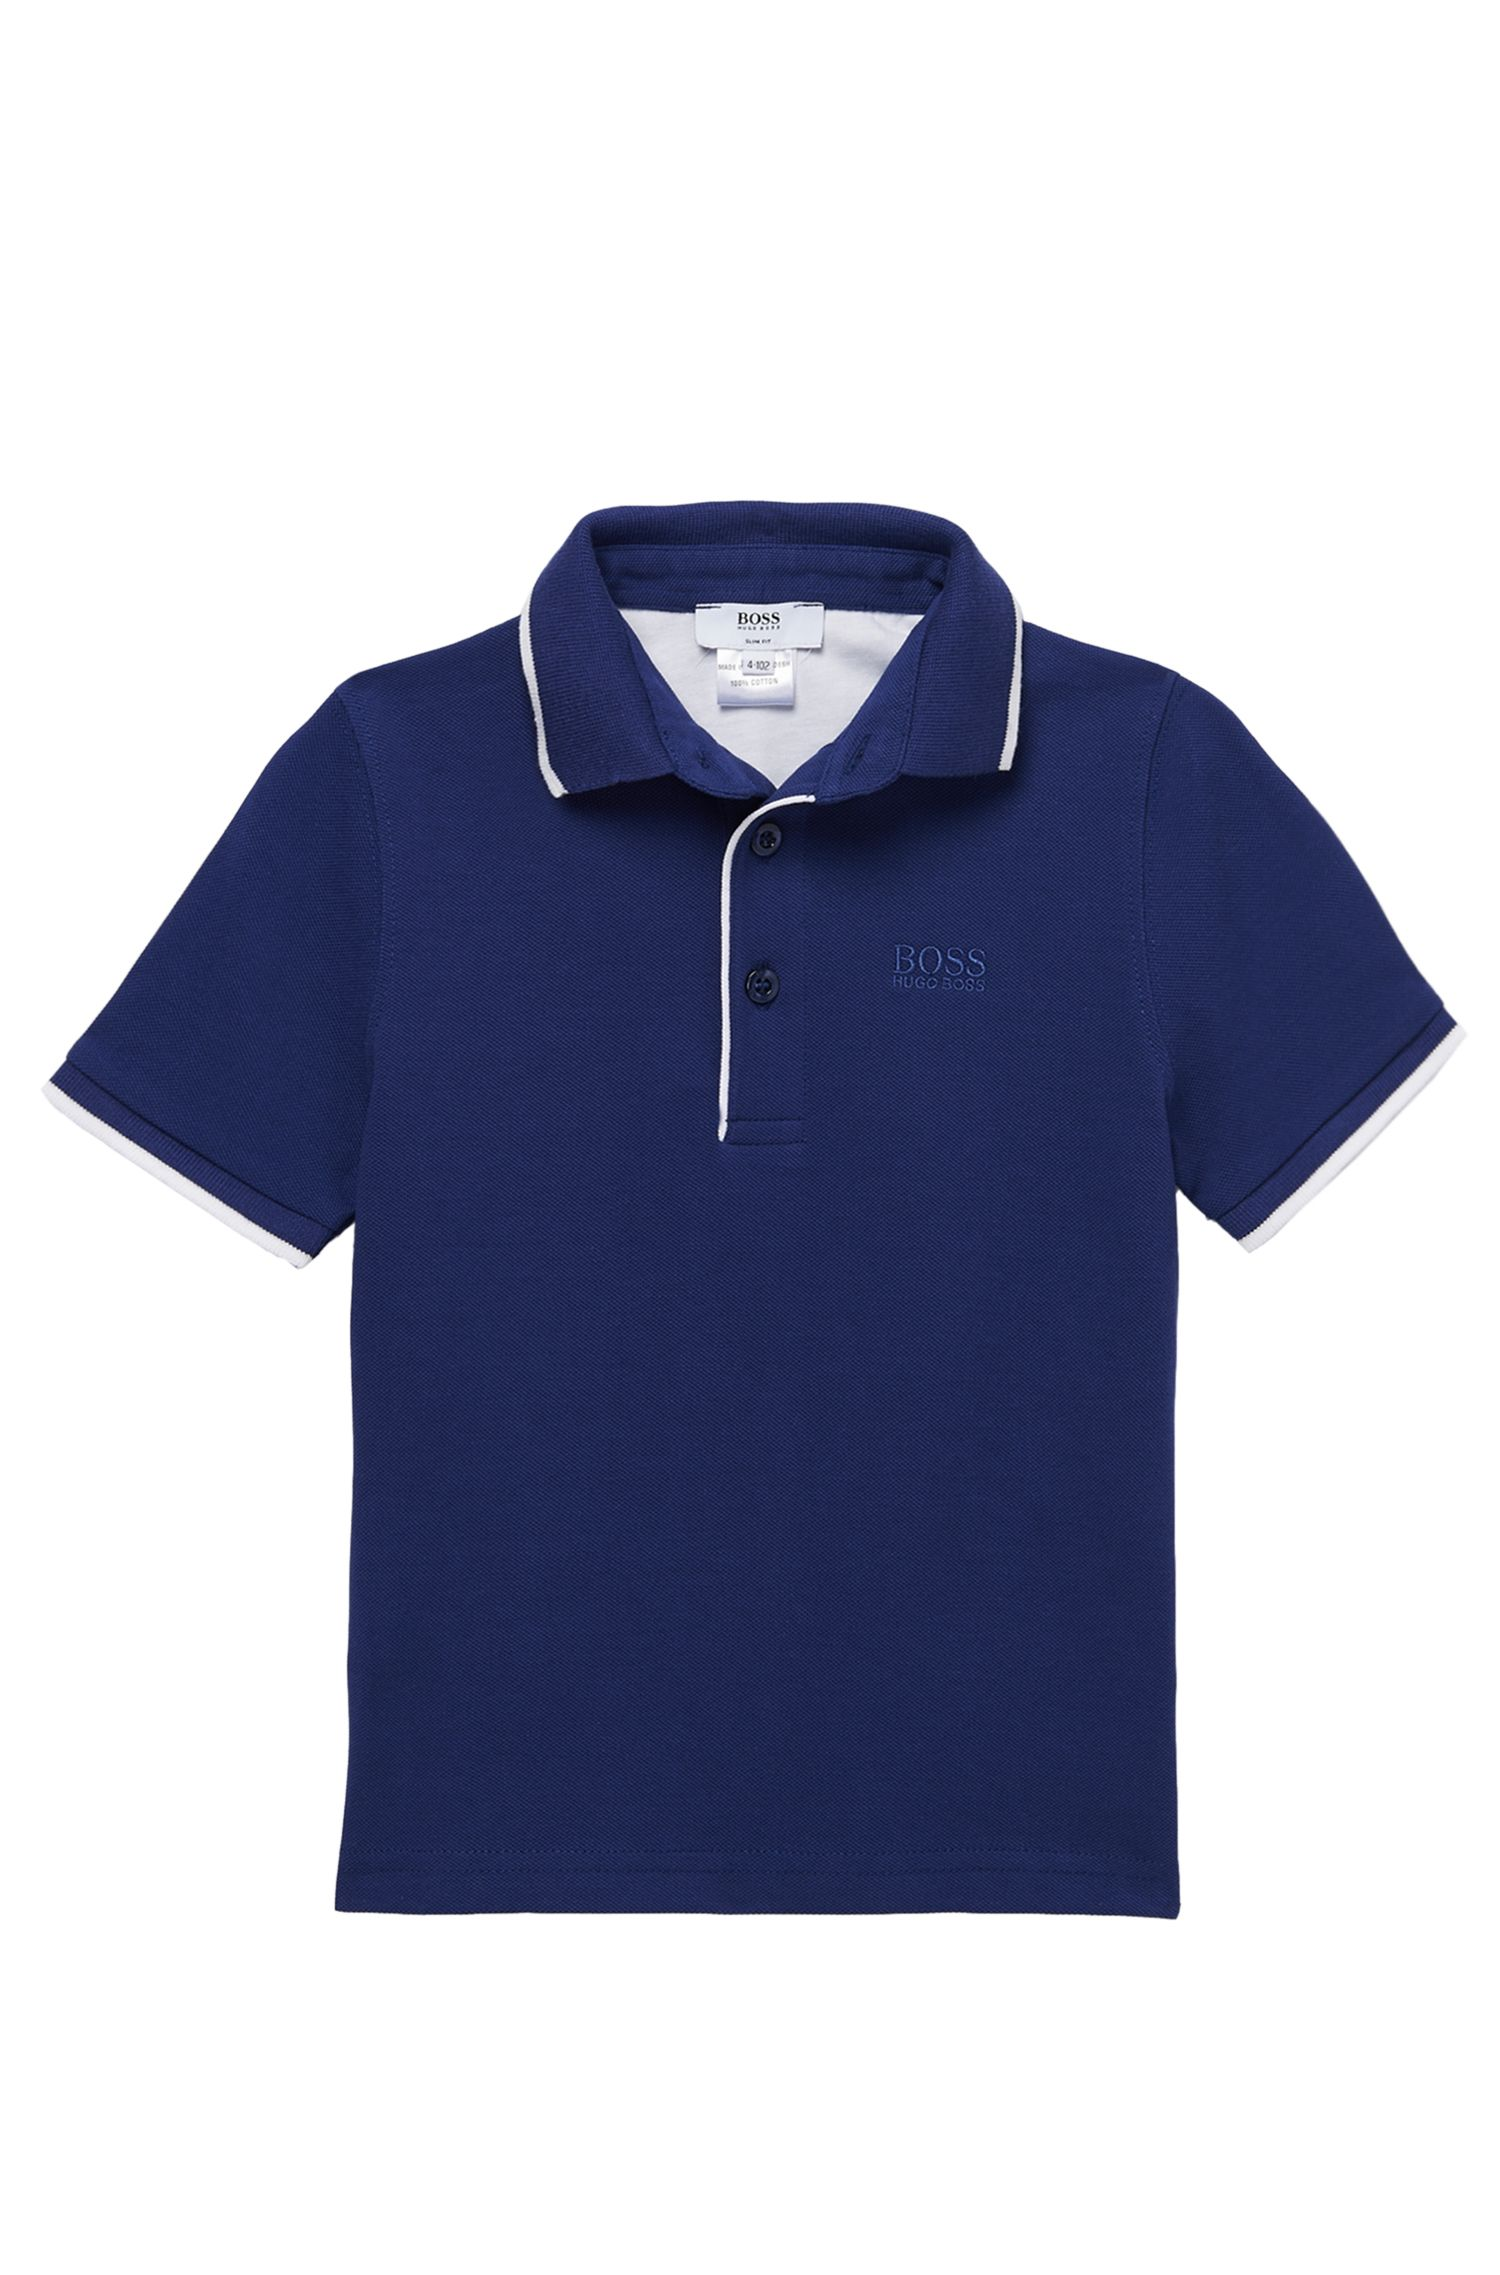 'J25668' | Boys Cotton Pique Polo Shirt